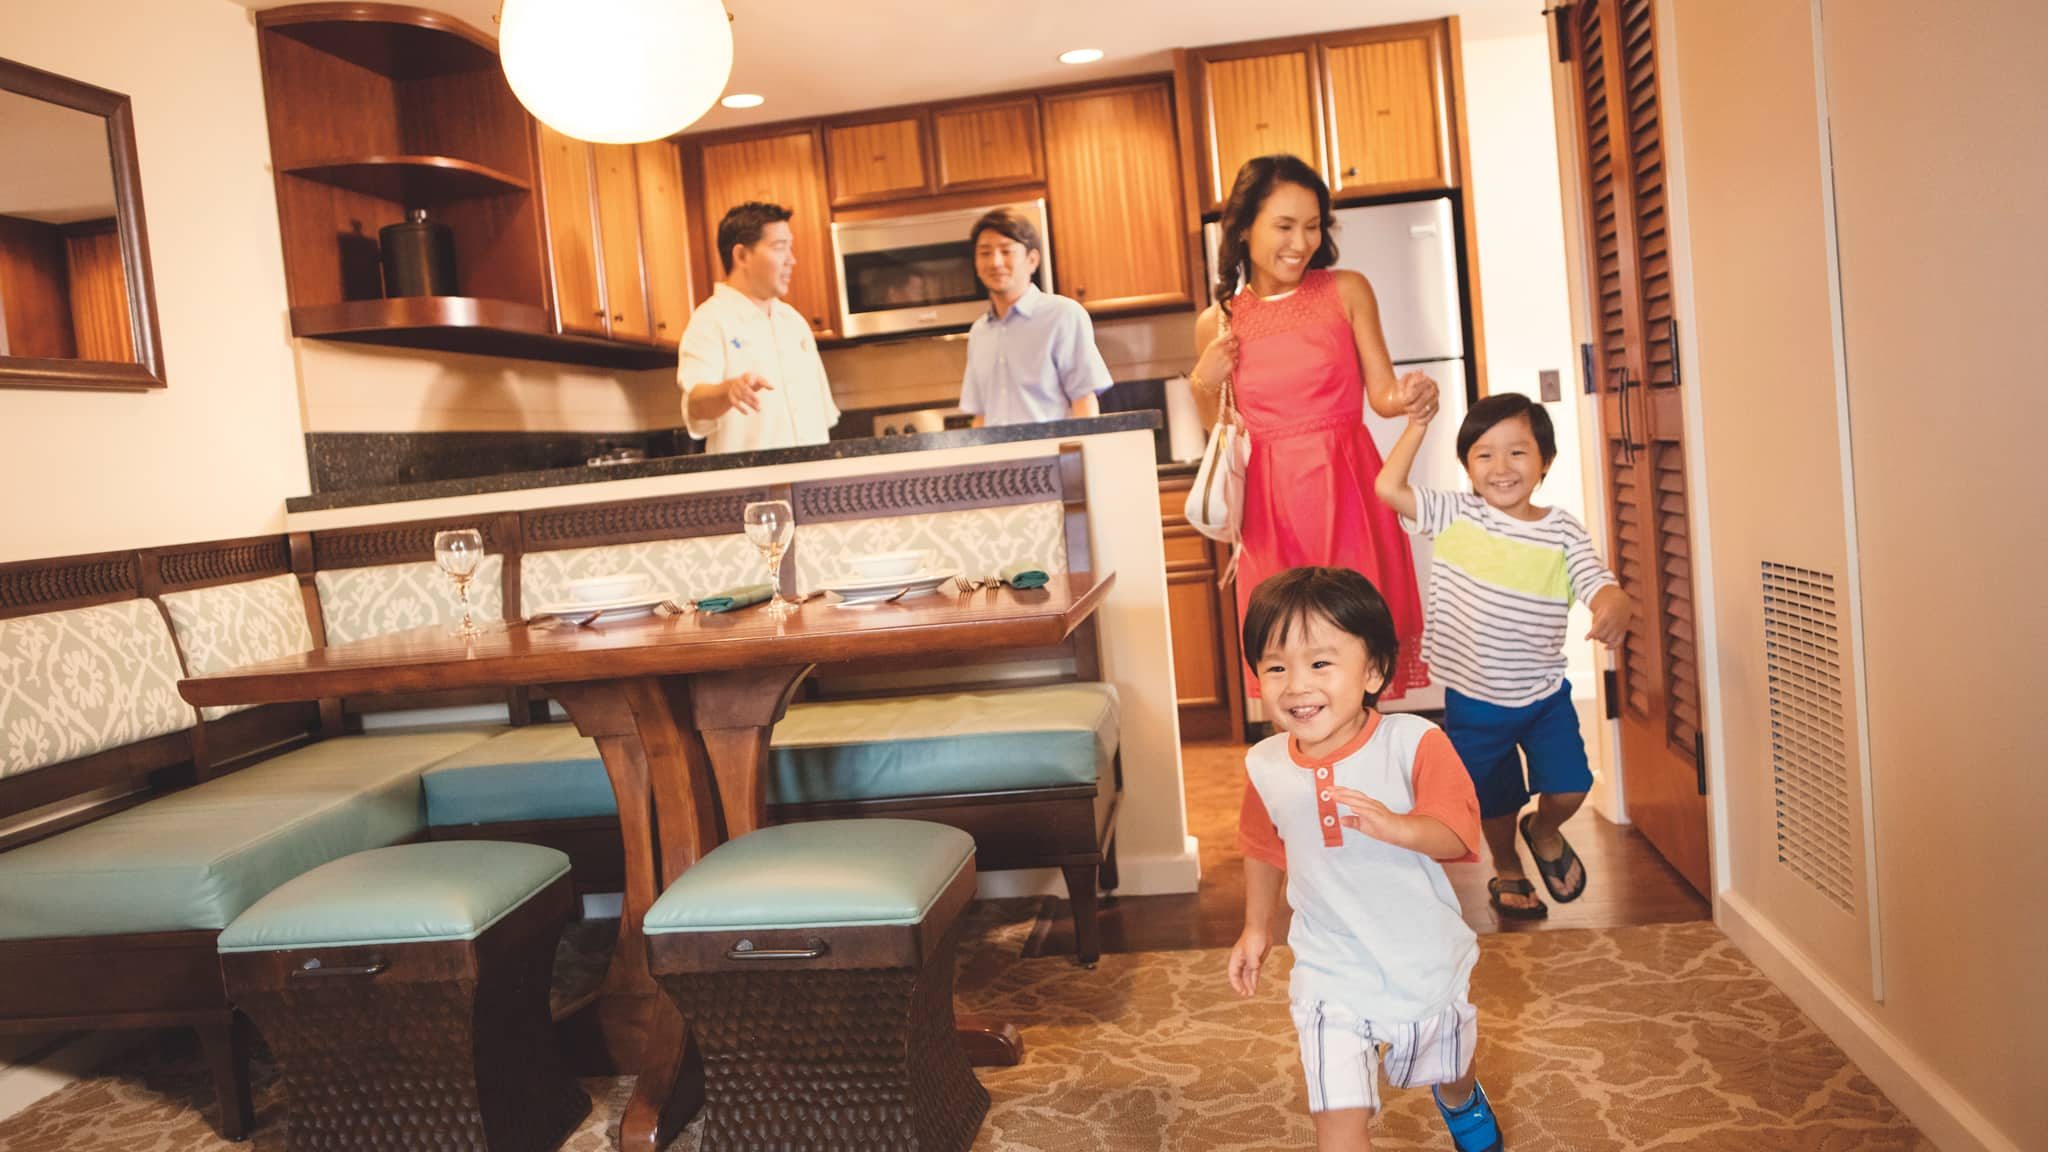 A mother, father and 3 children in the kitchen and dining area at Aulani